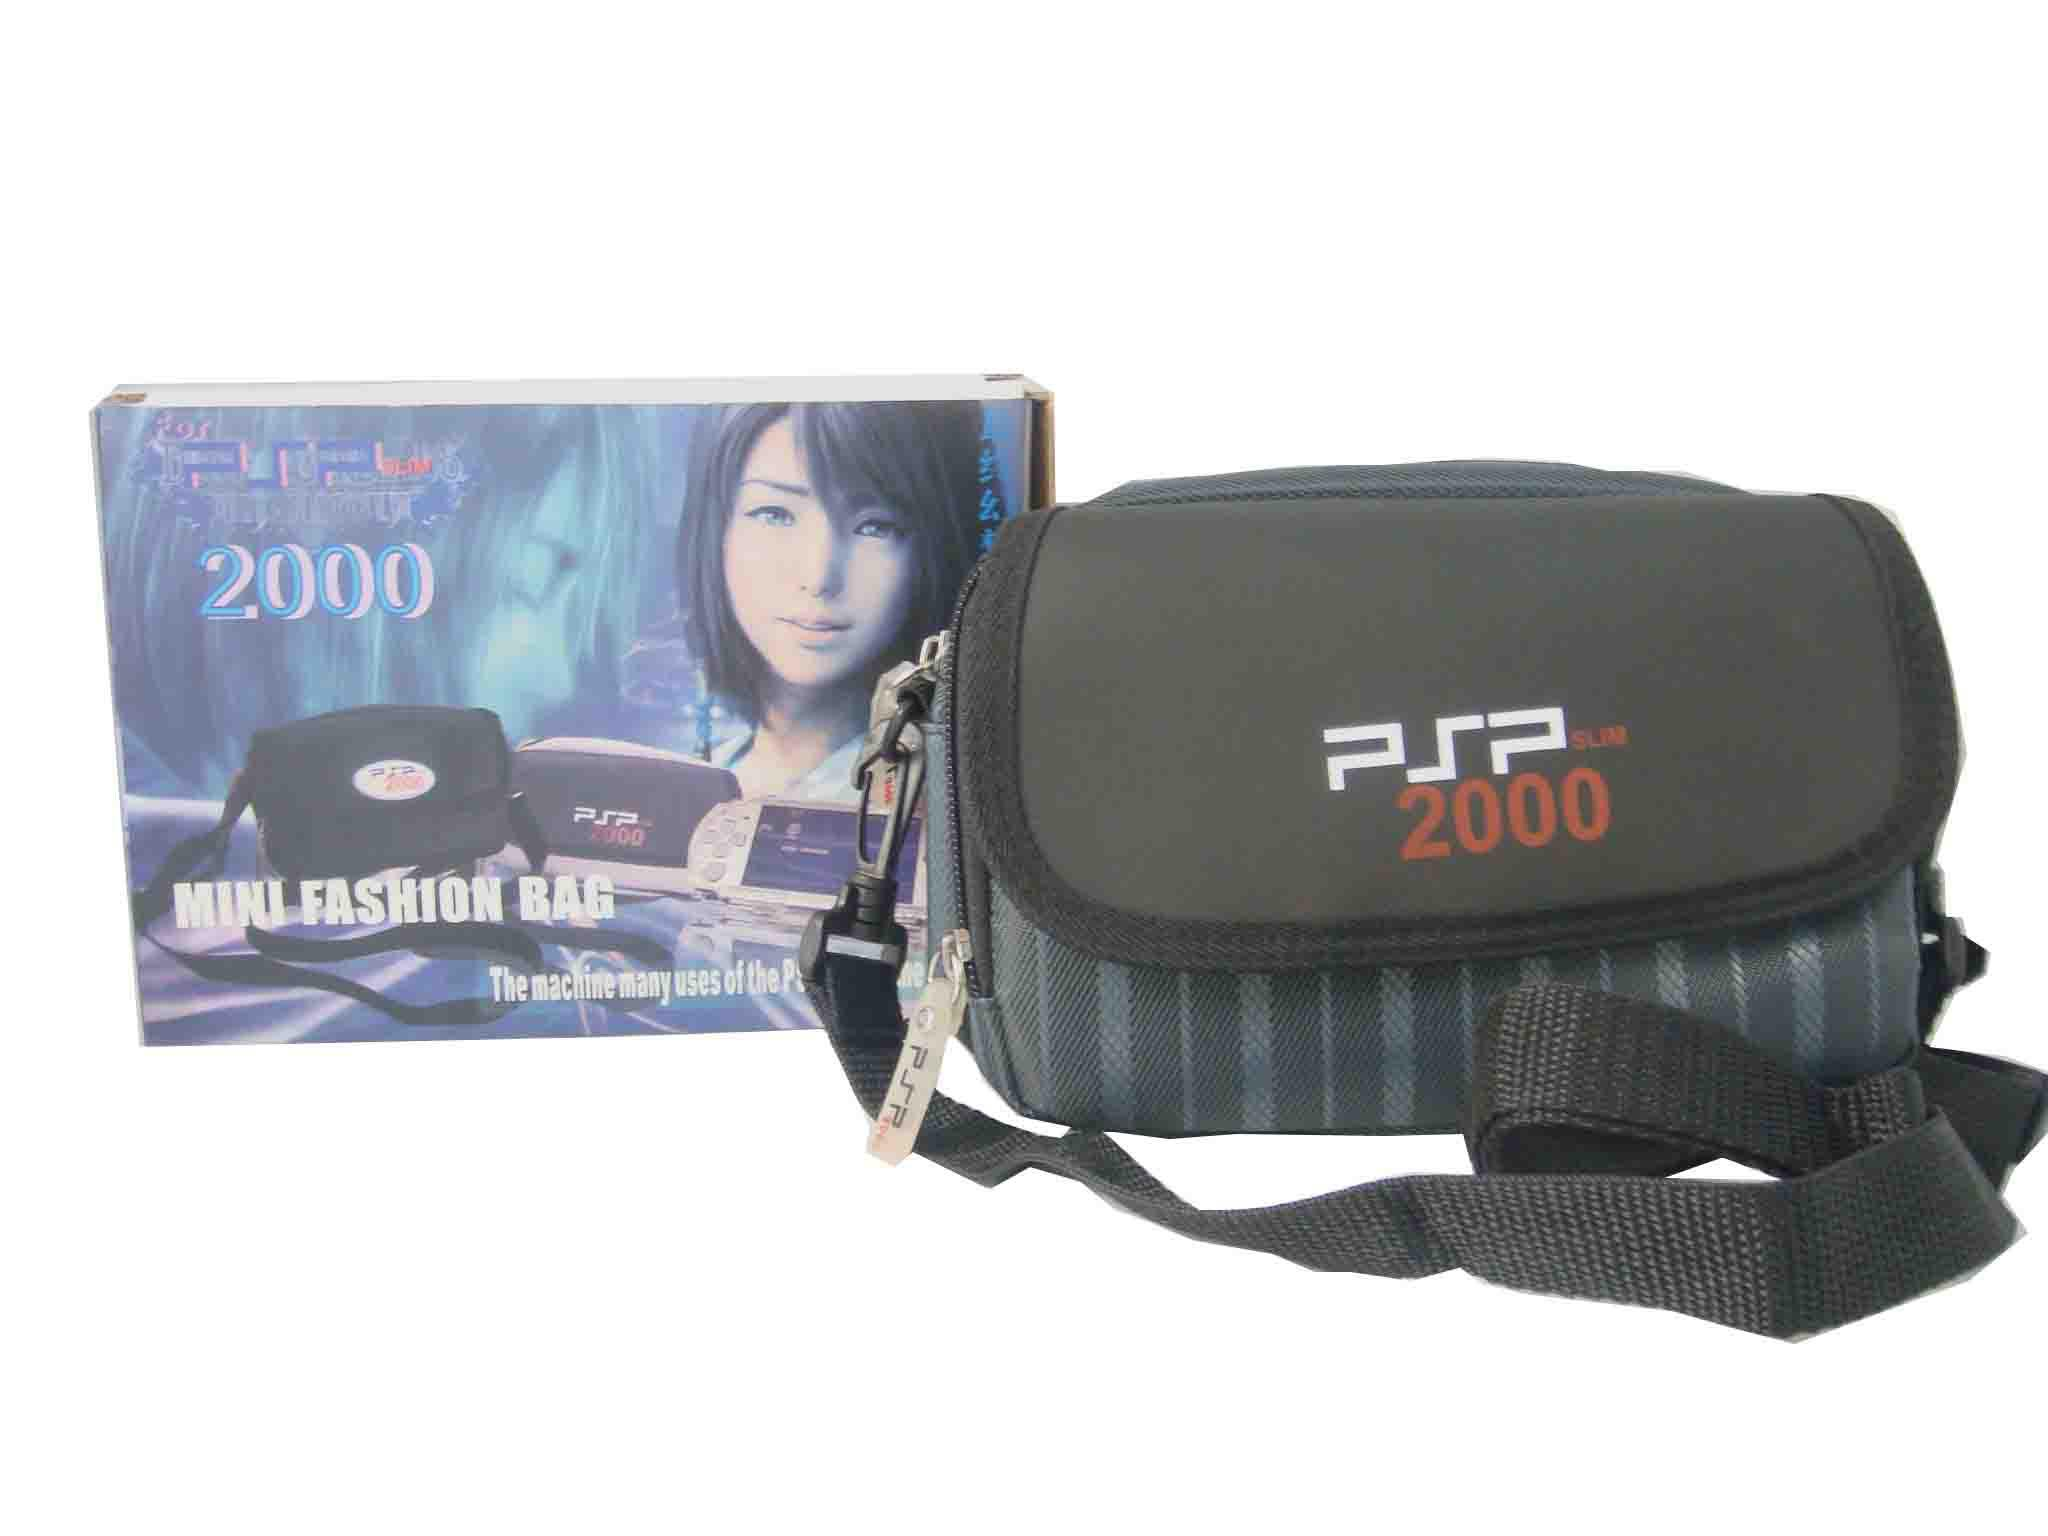 Multi fuction bag for PSP2000